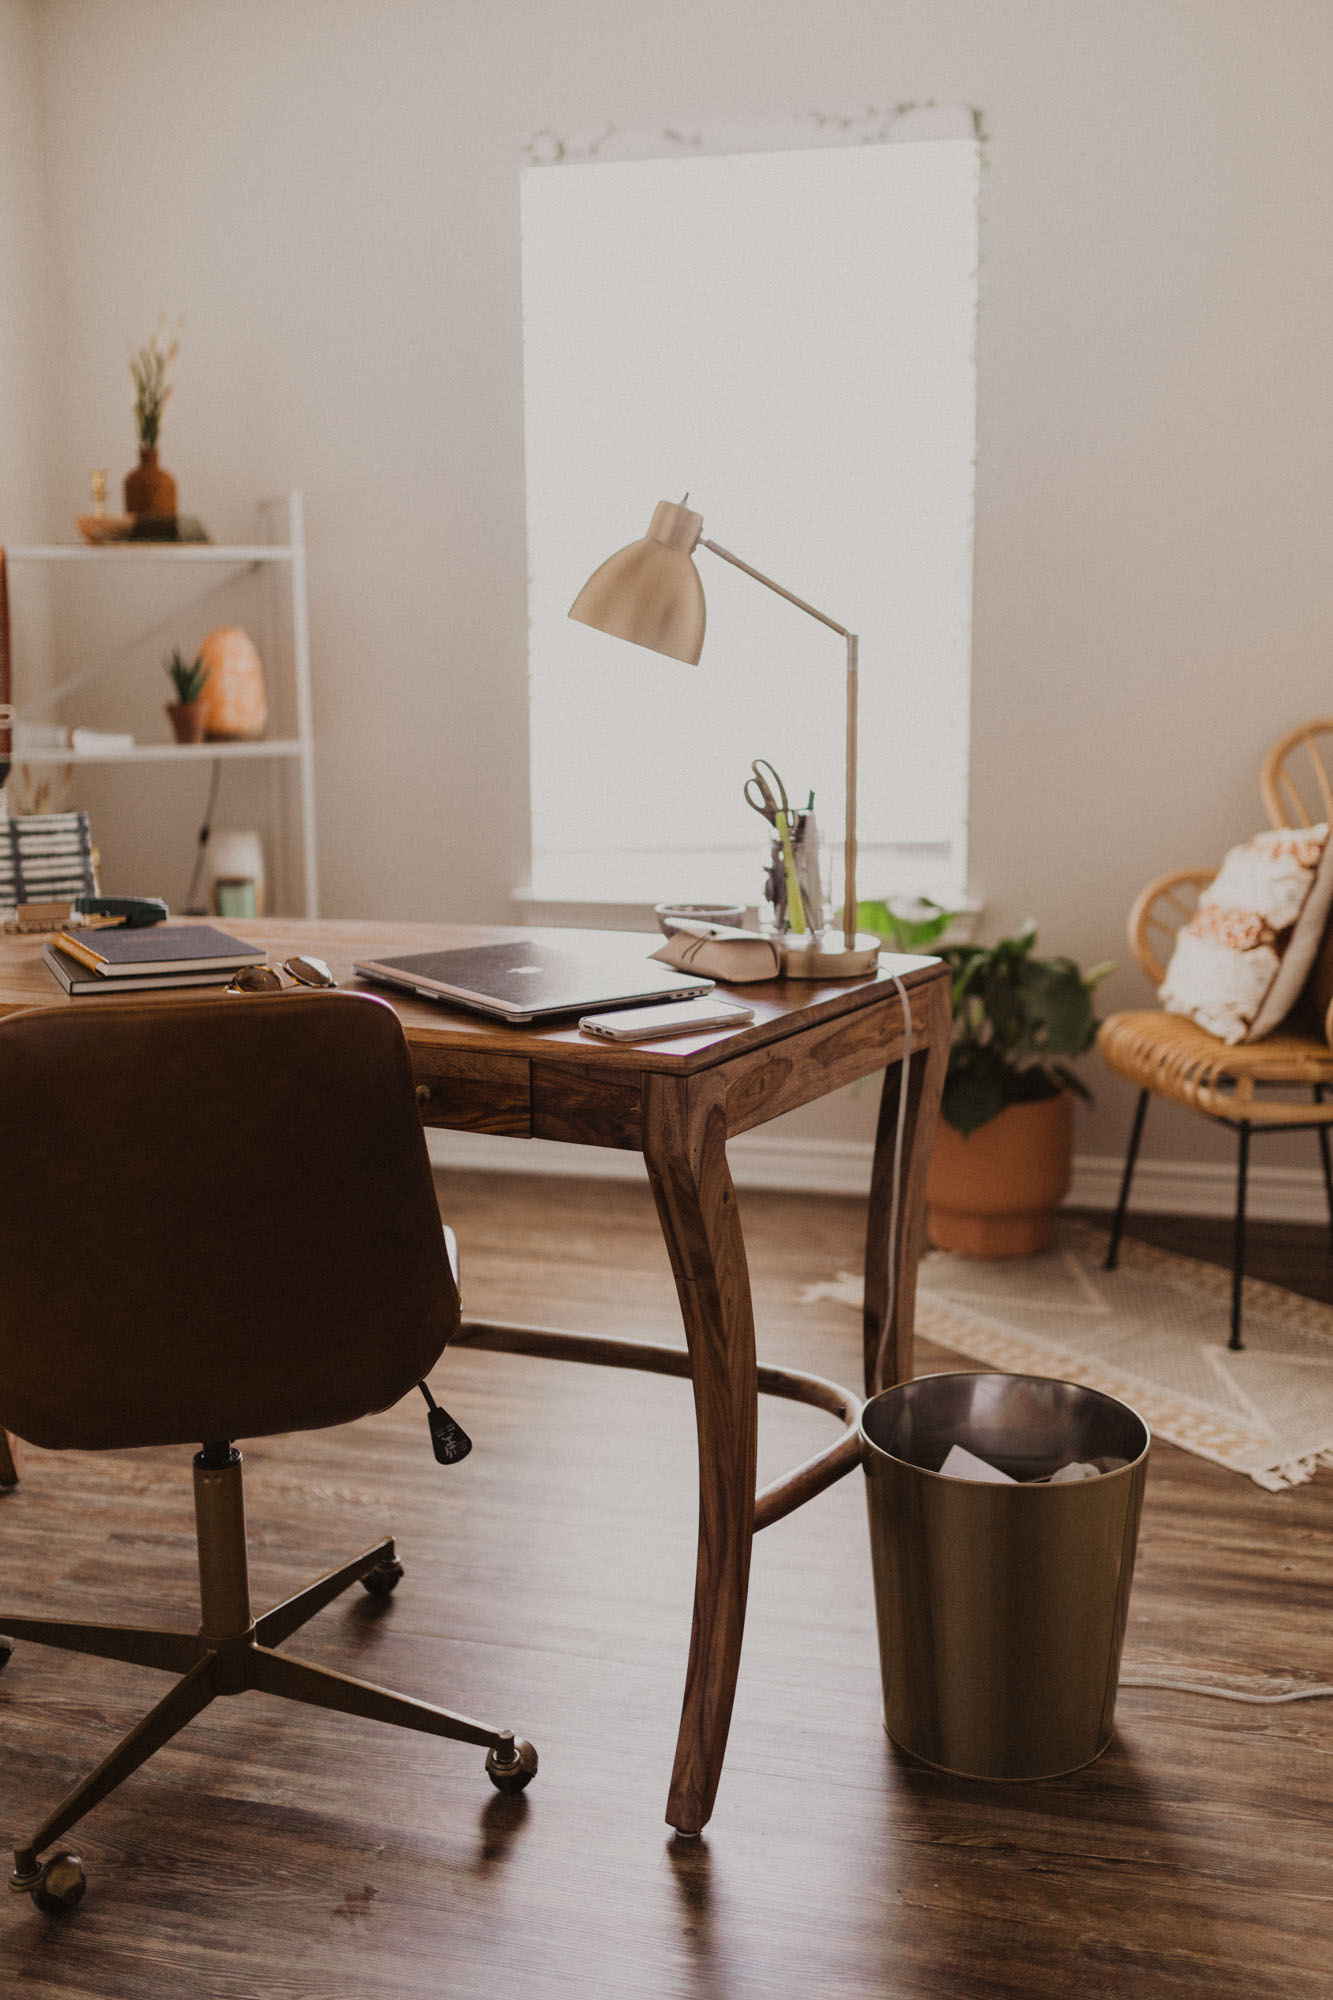 Wooden desk and details in a home office